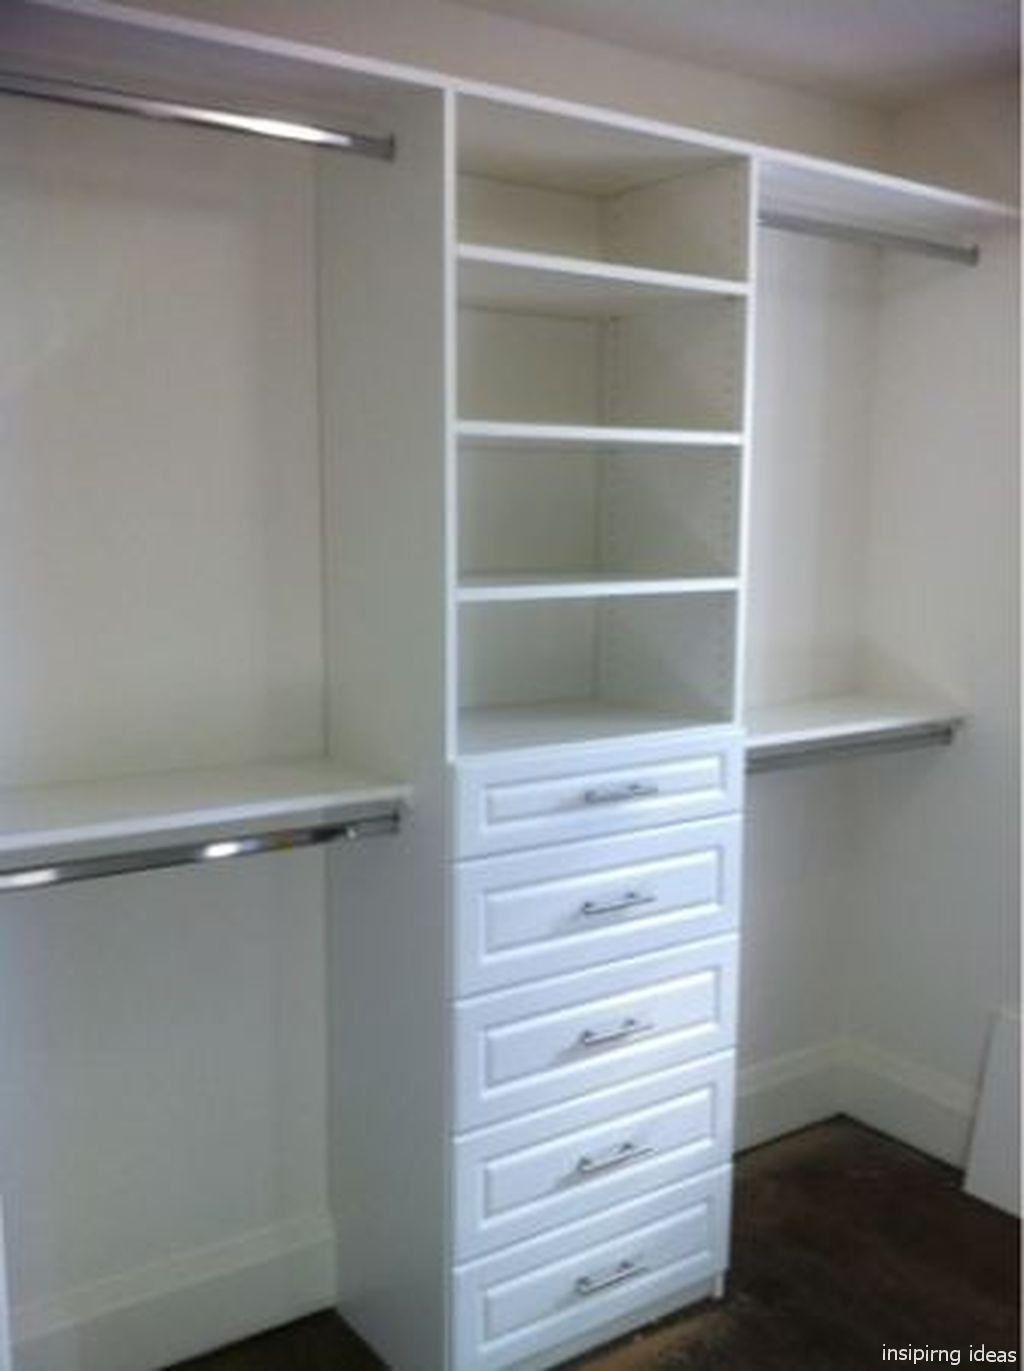 Cool genius small closet ideas and makeover https roomaholic also new walk in designs that you must know rh pinterest